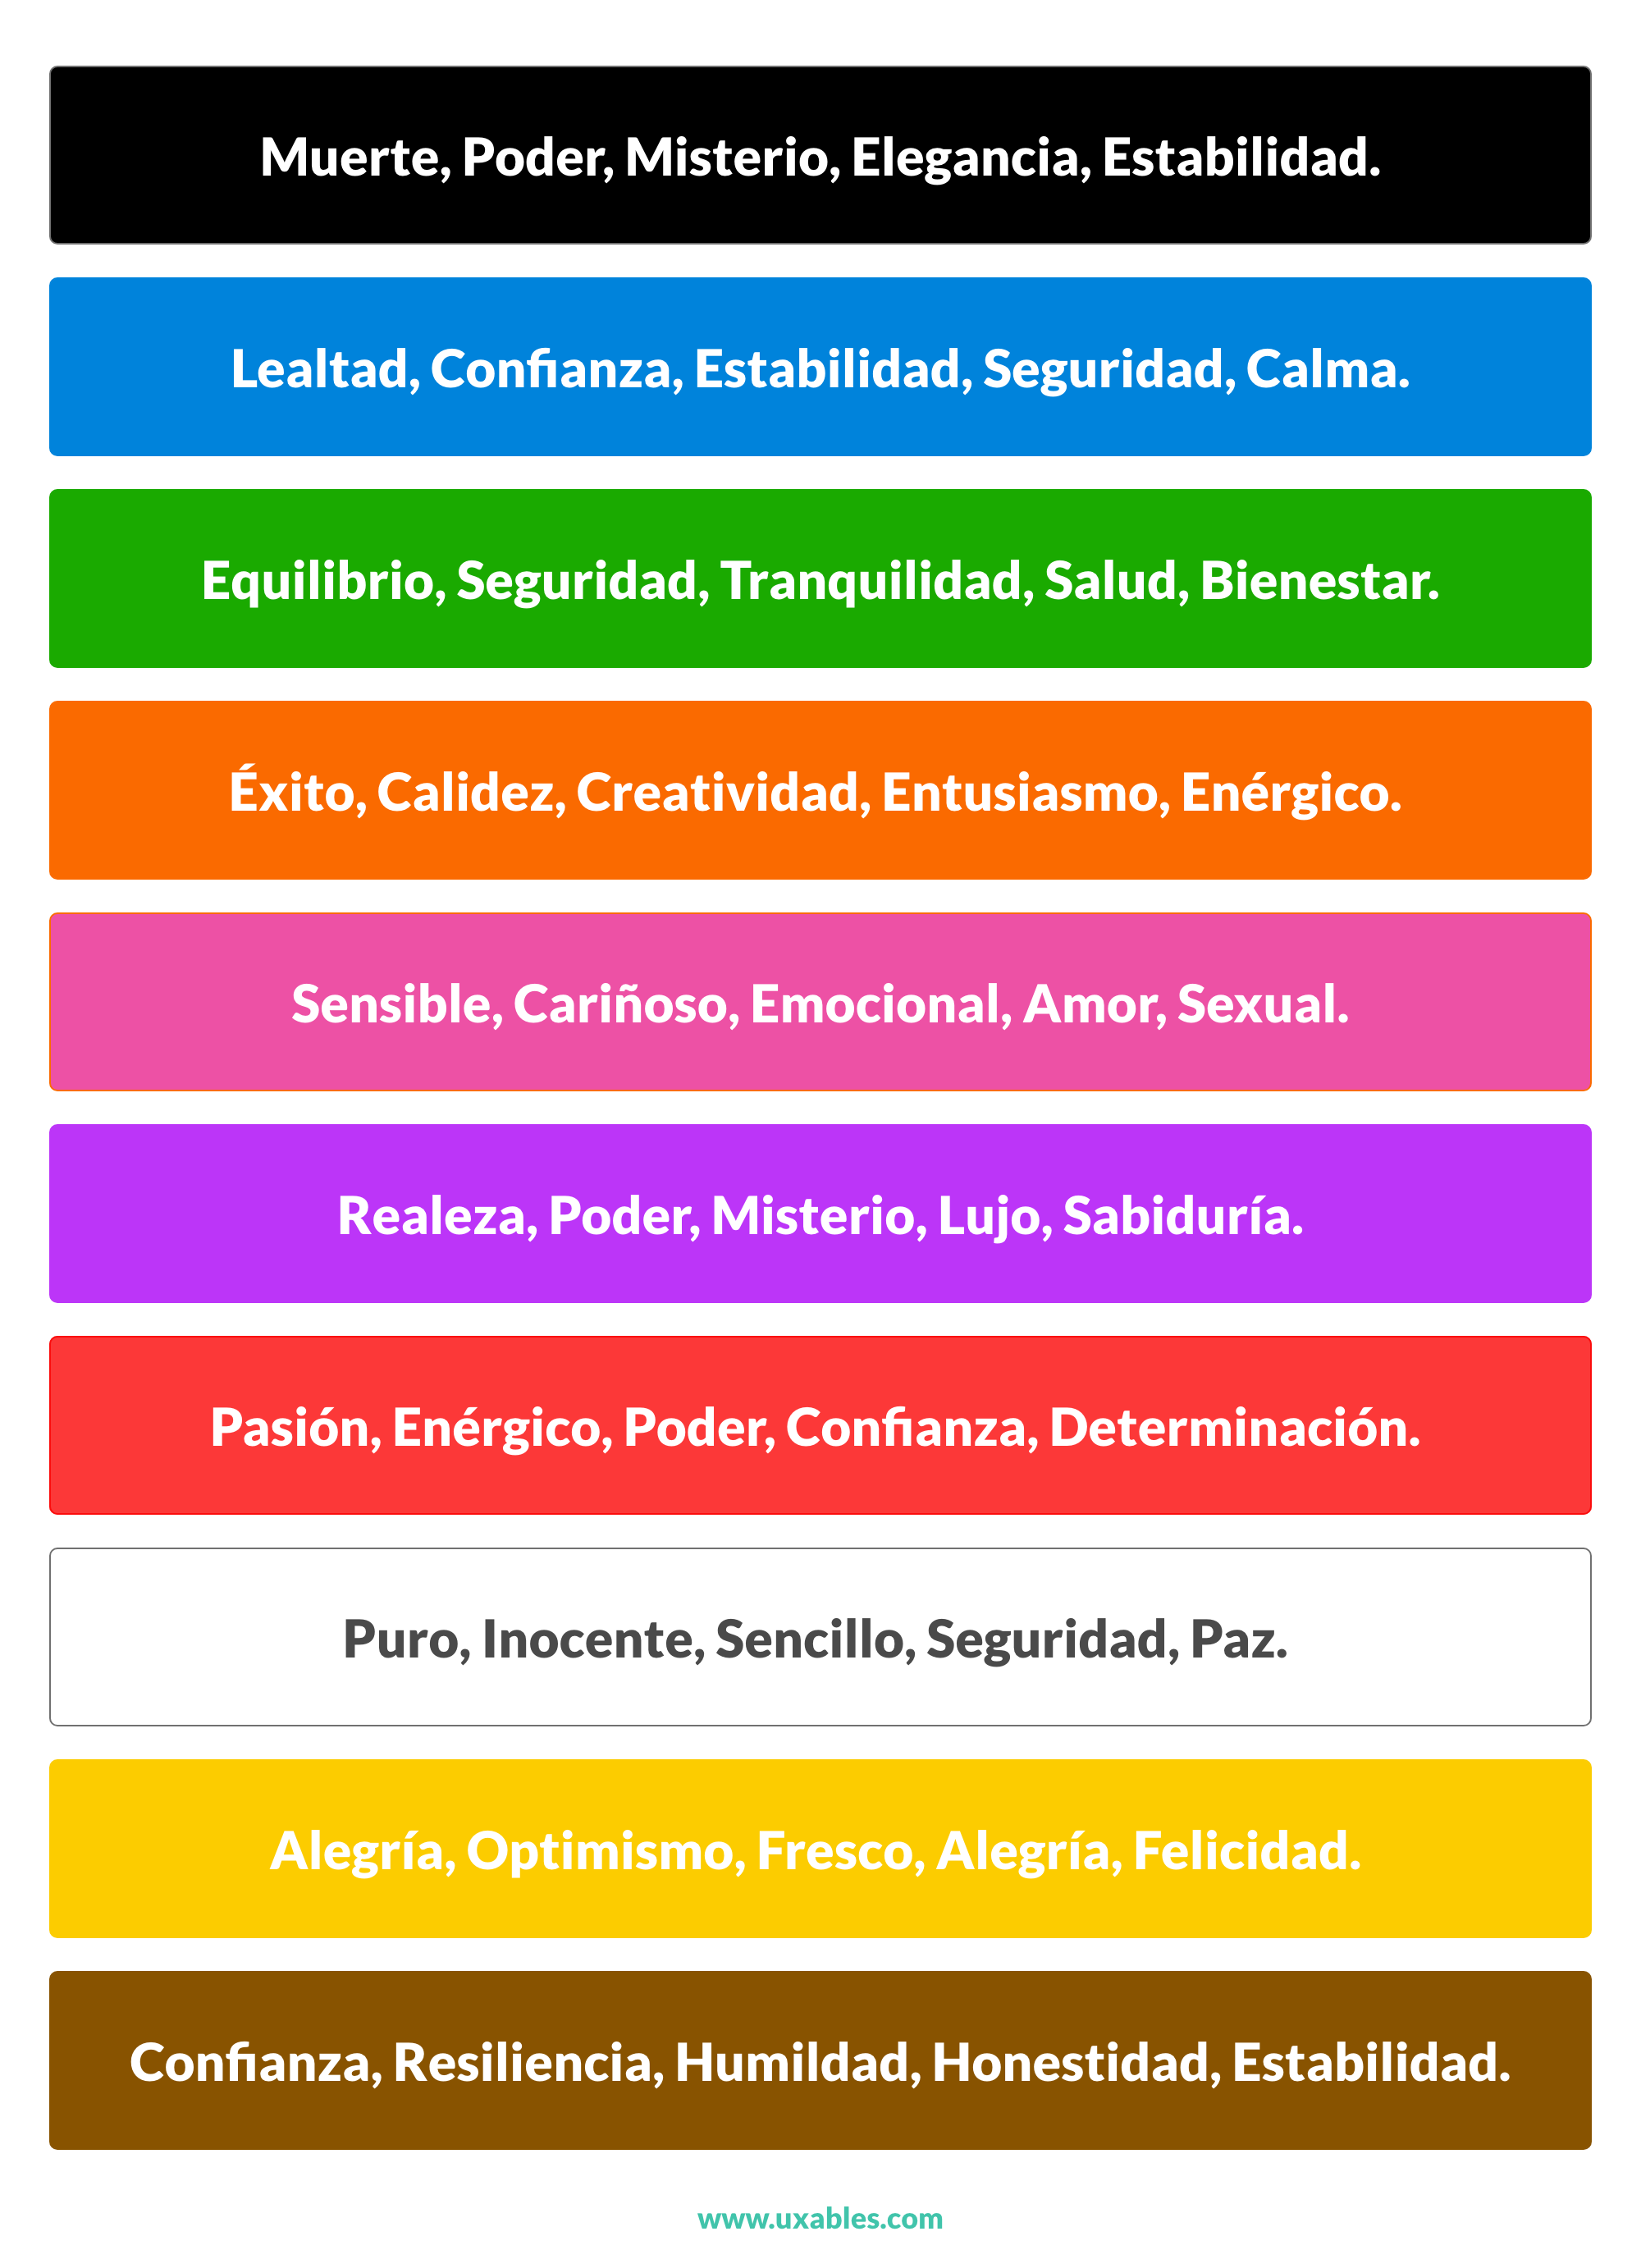 psicologia del color, psicologia de los colores, psicologia, color, colores, significado colores, ux, ui, usabilidad, interfaces, web,